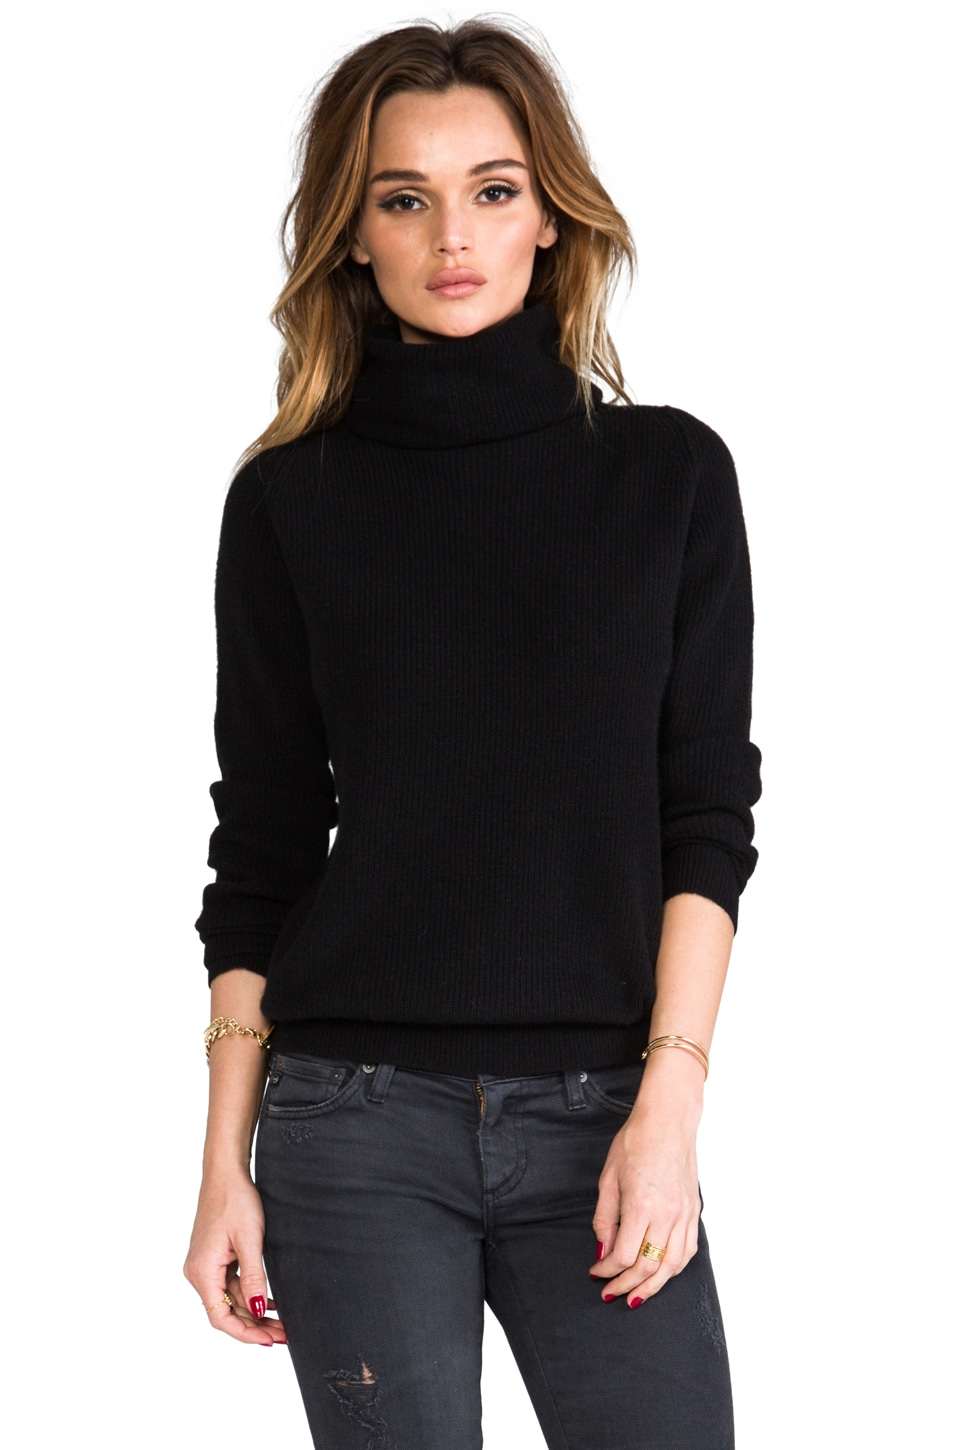 Inhabit Cashmere Shaker Turtleneck in Black